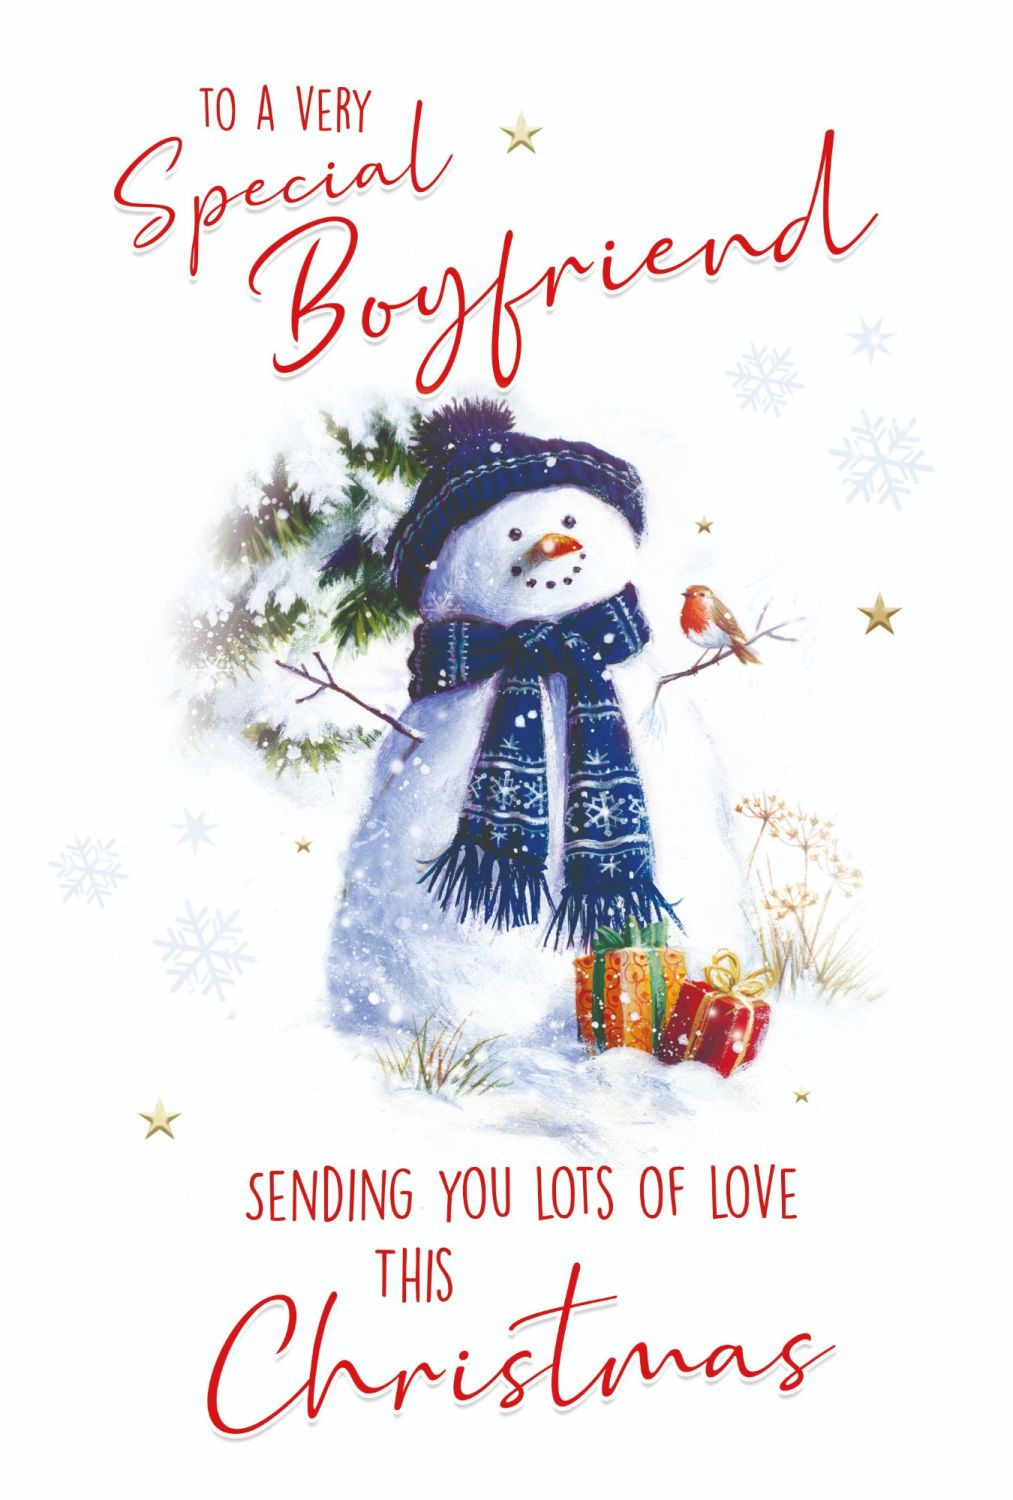 To A Very Special Boyfriend Christmas Card - SENDING You LOTS Of LOVE - Boy